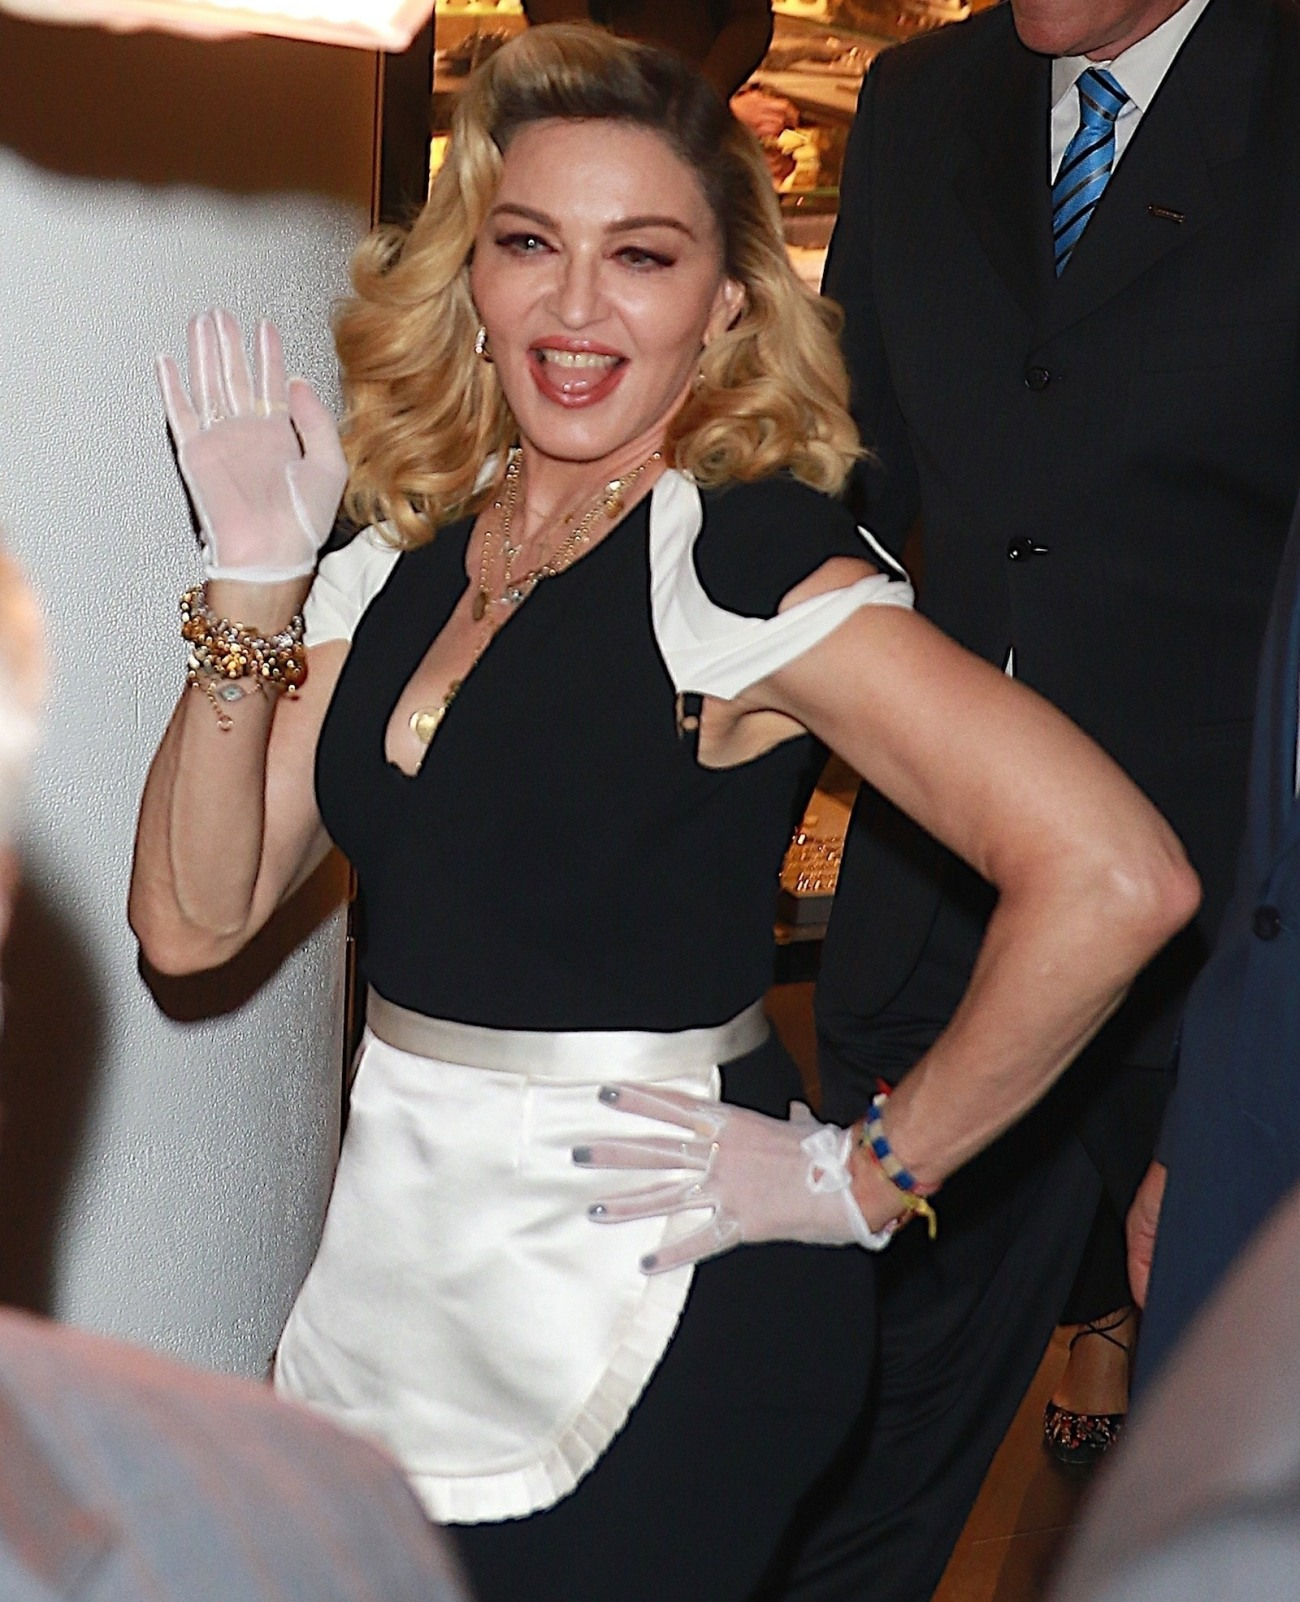 Madonna promotes her new line of skincare products at Barneys New York in New York